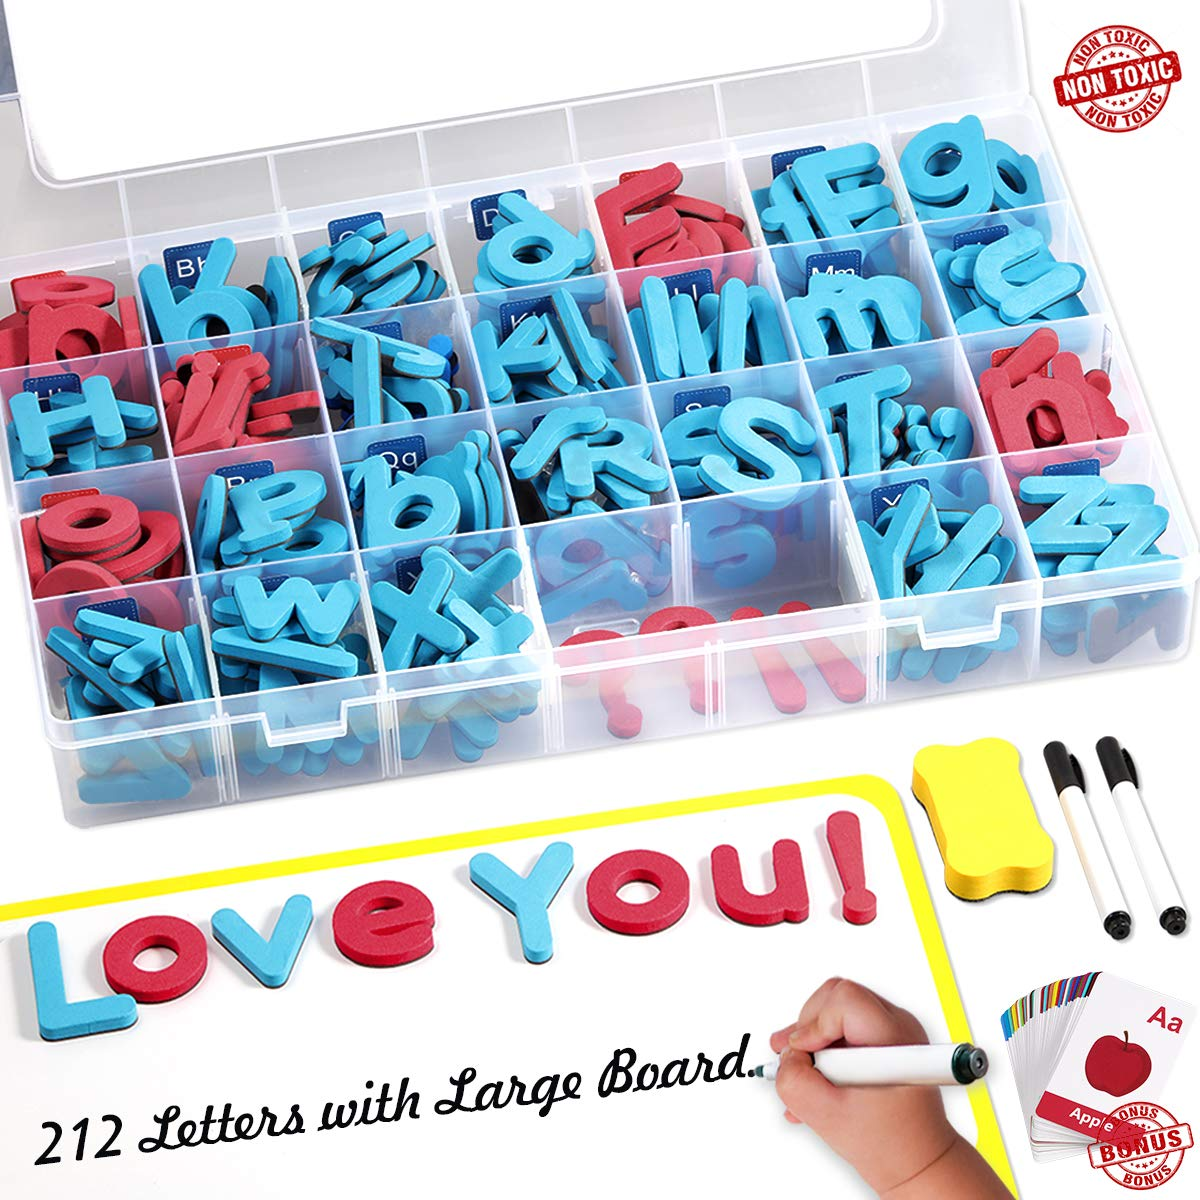 Magnetic Letters Kit, 212Pcs A-Z Foam Magnetic Letters, Alphabet Letters with Large Double-Side Magnet Board and Learning Cards, Educational Refrigerator Magnets for Preschool Learning Spelling by Spruce